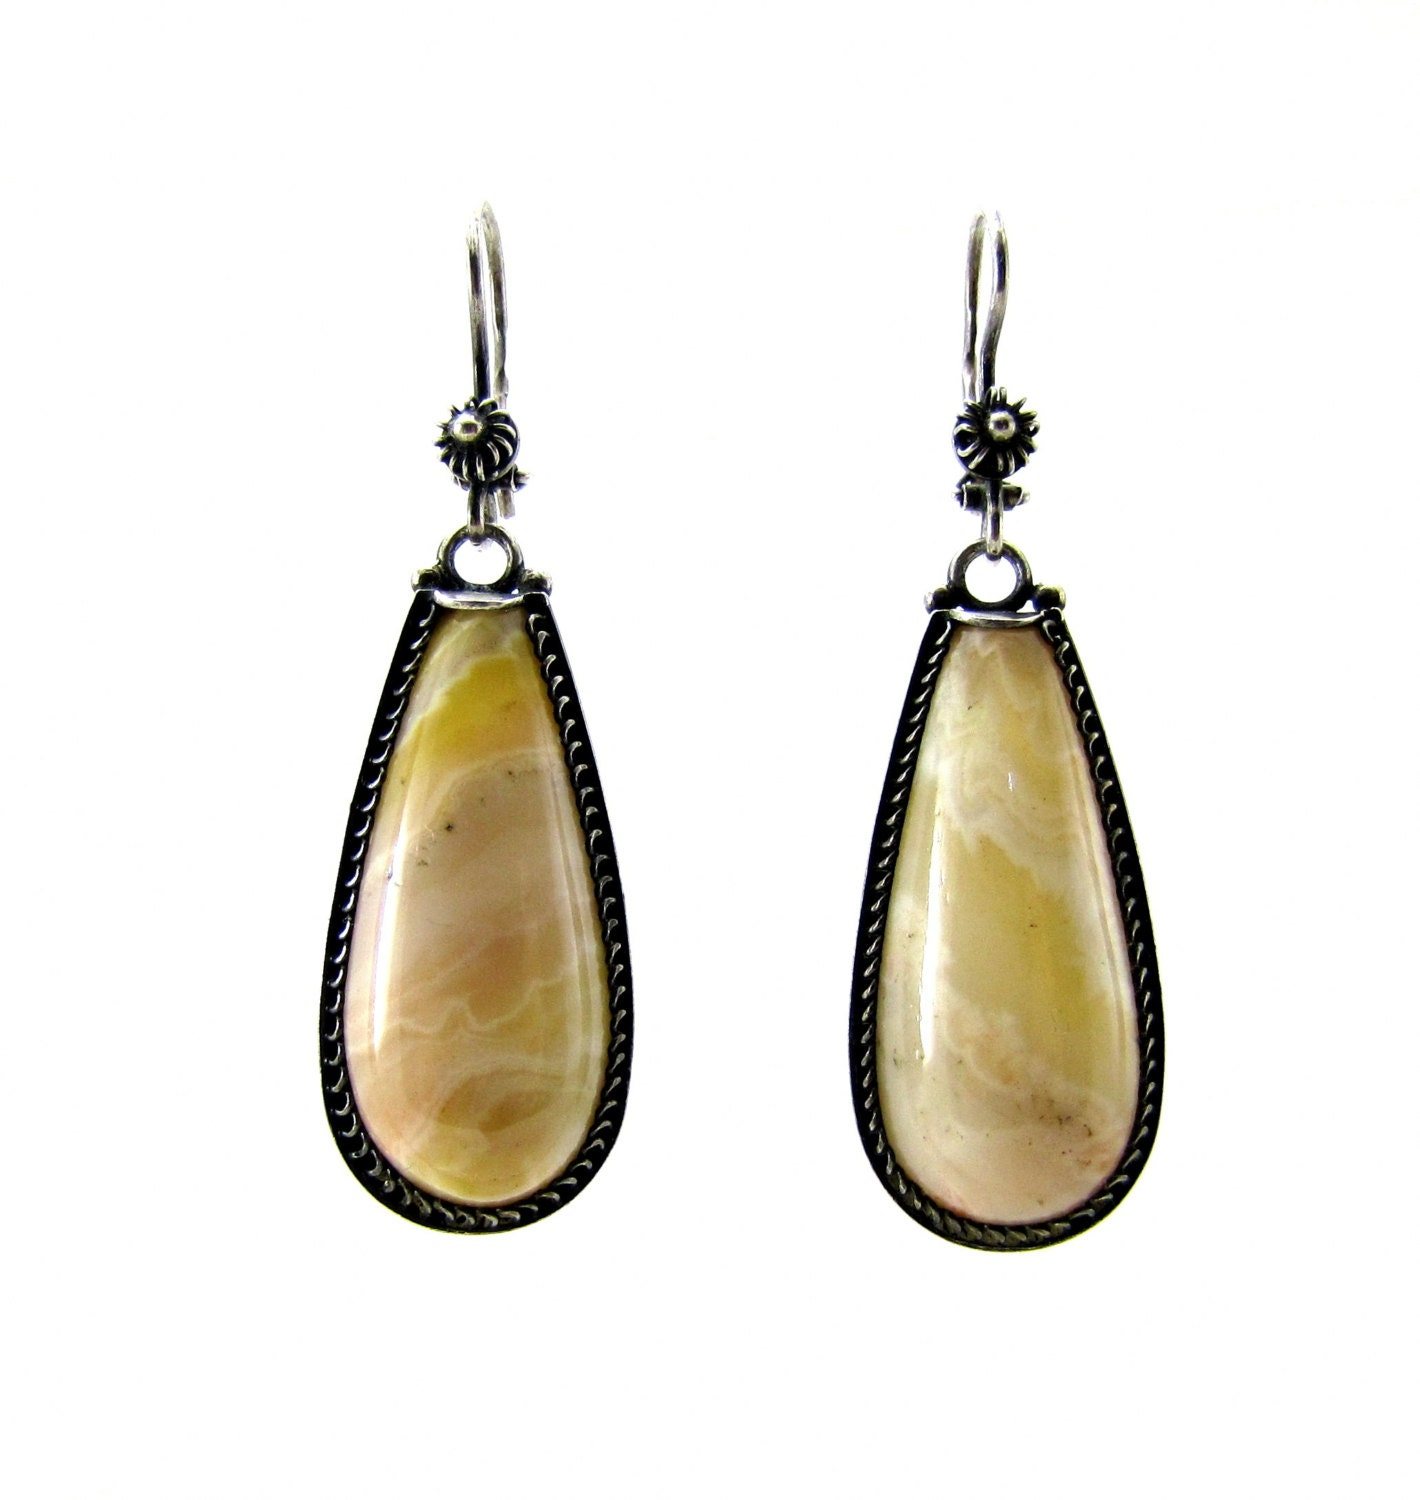 agate earring chagne earring for bridesmaid ivory earring